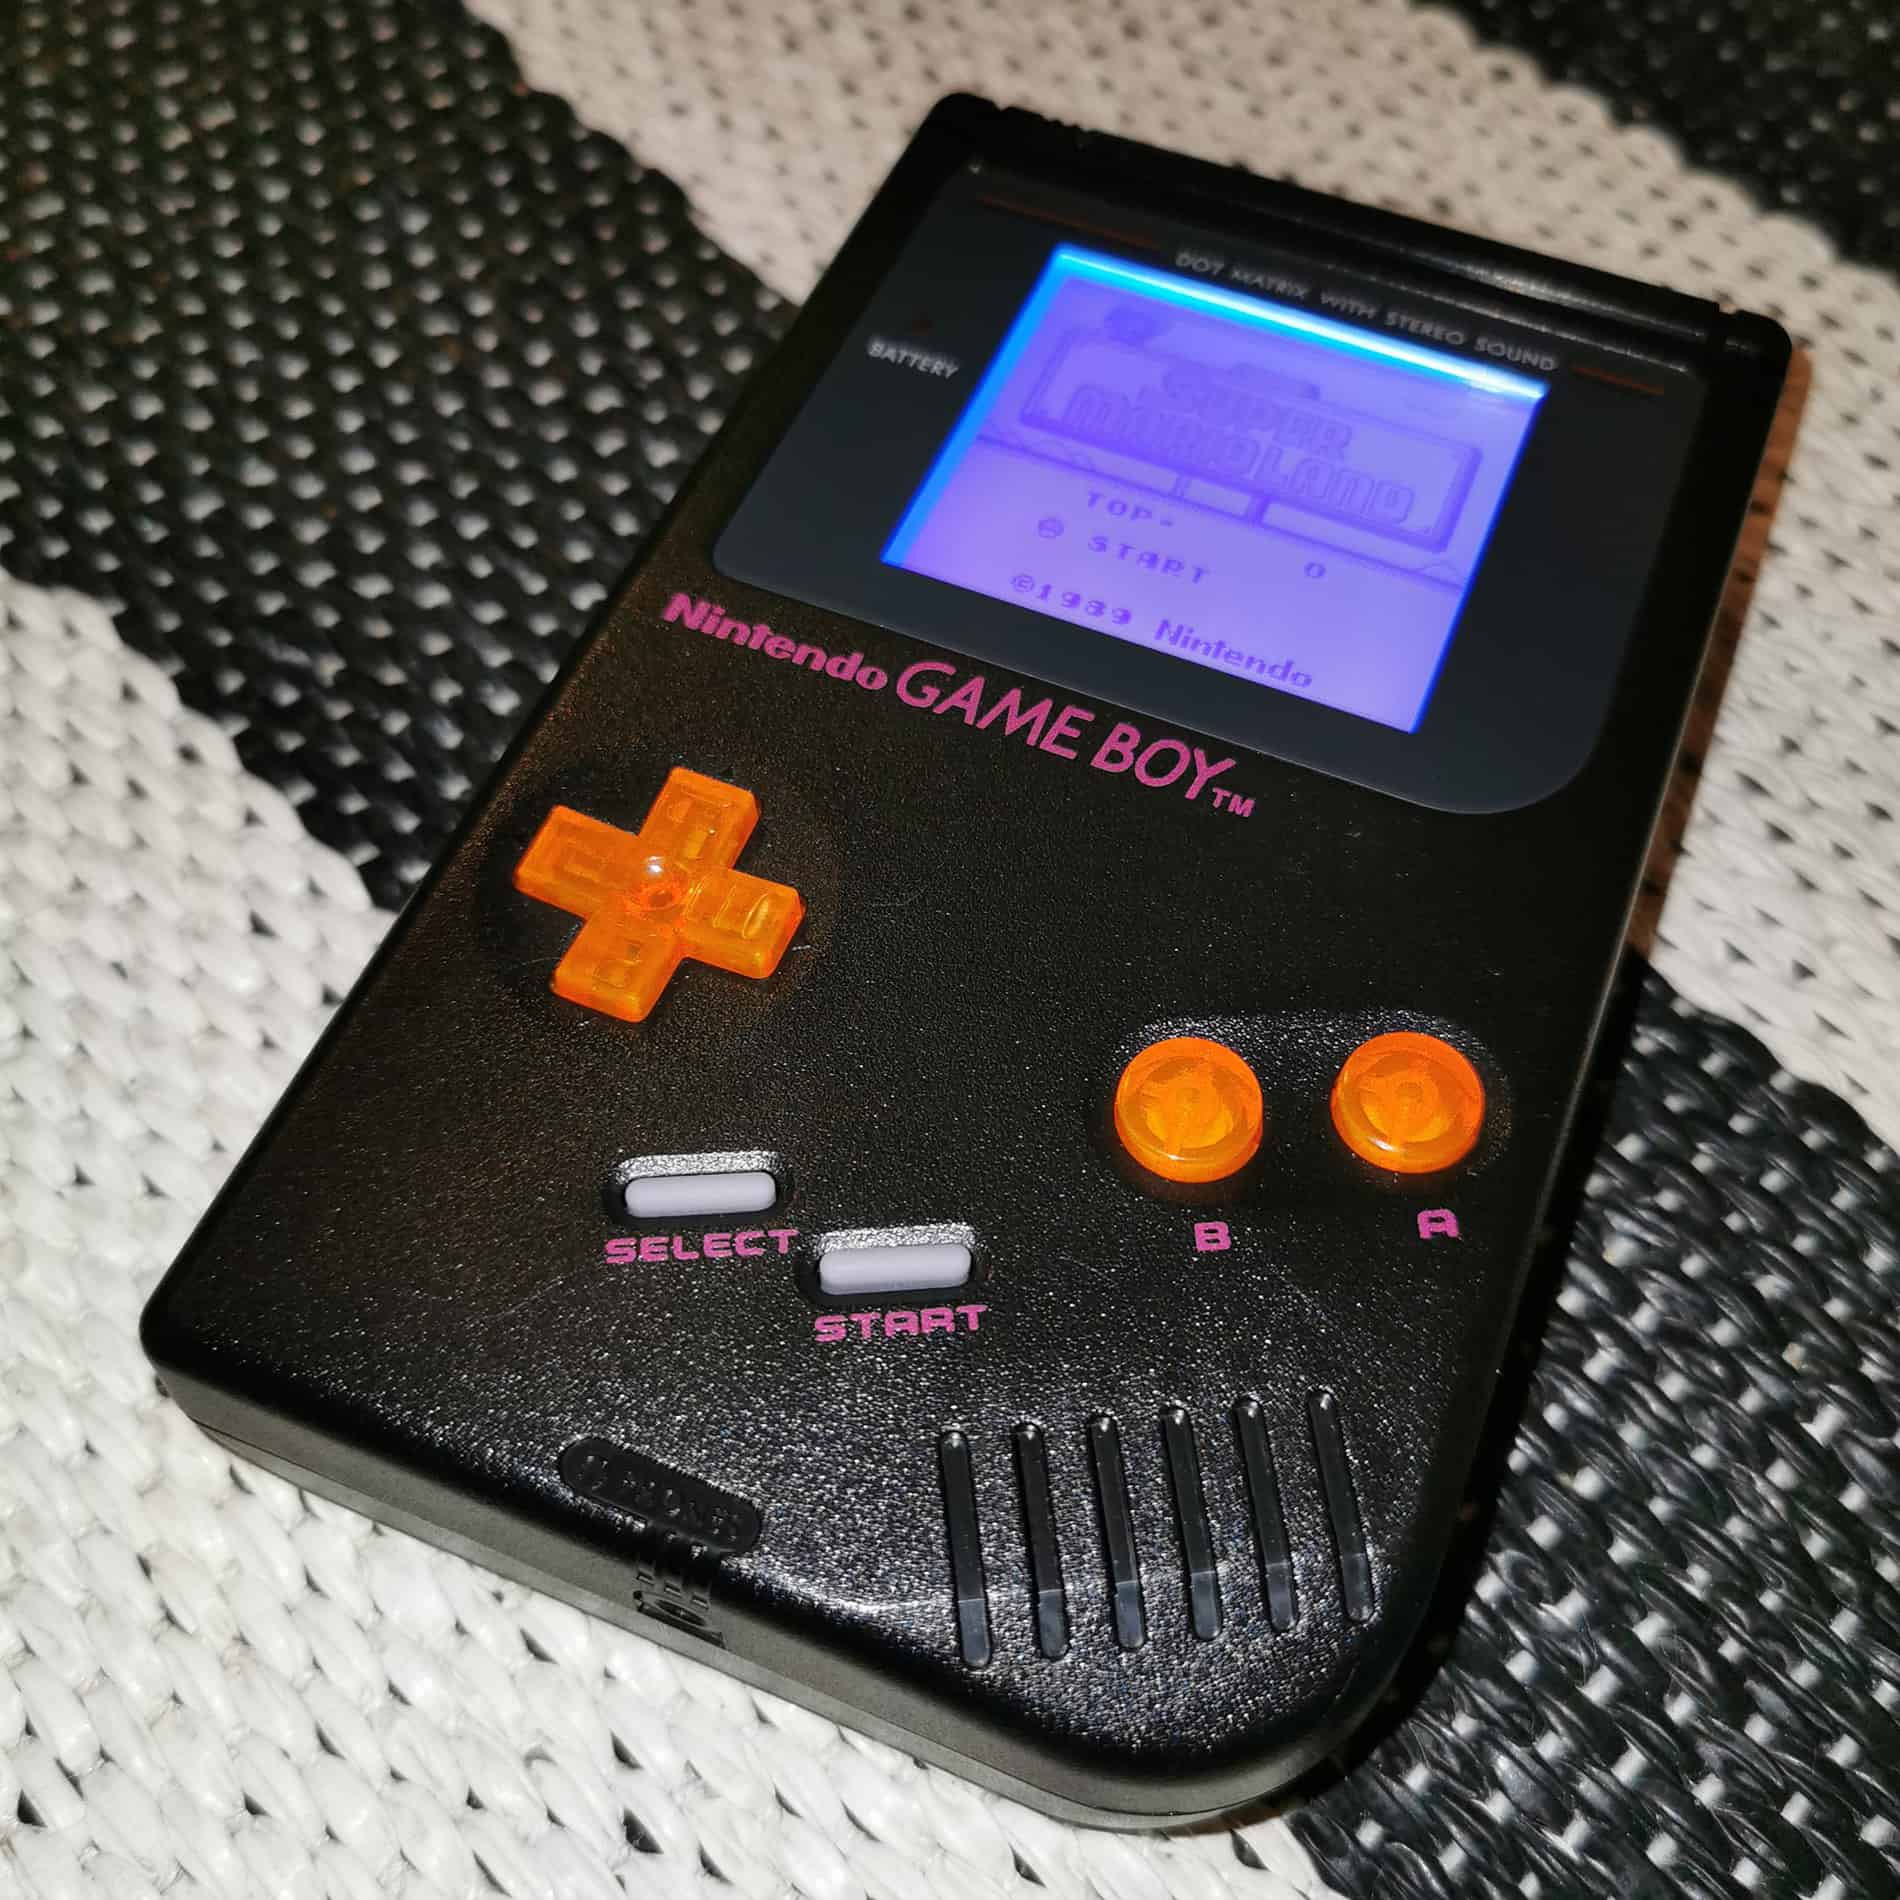 Game Boy DMG-01 Black